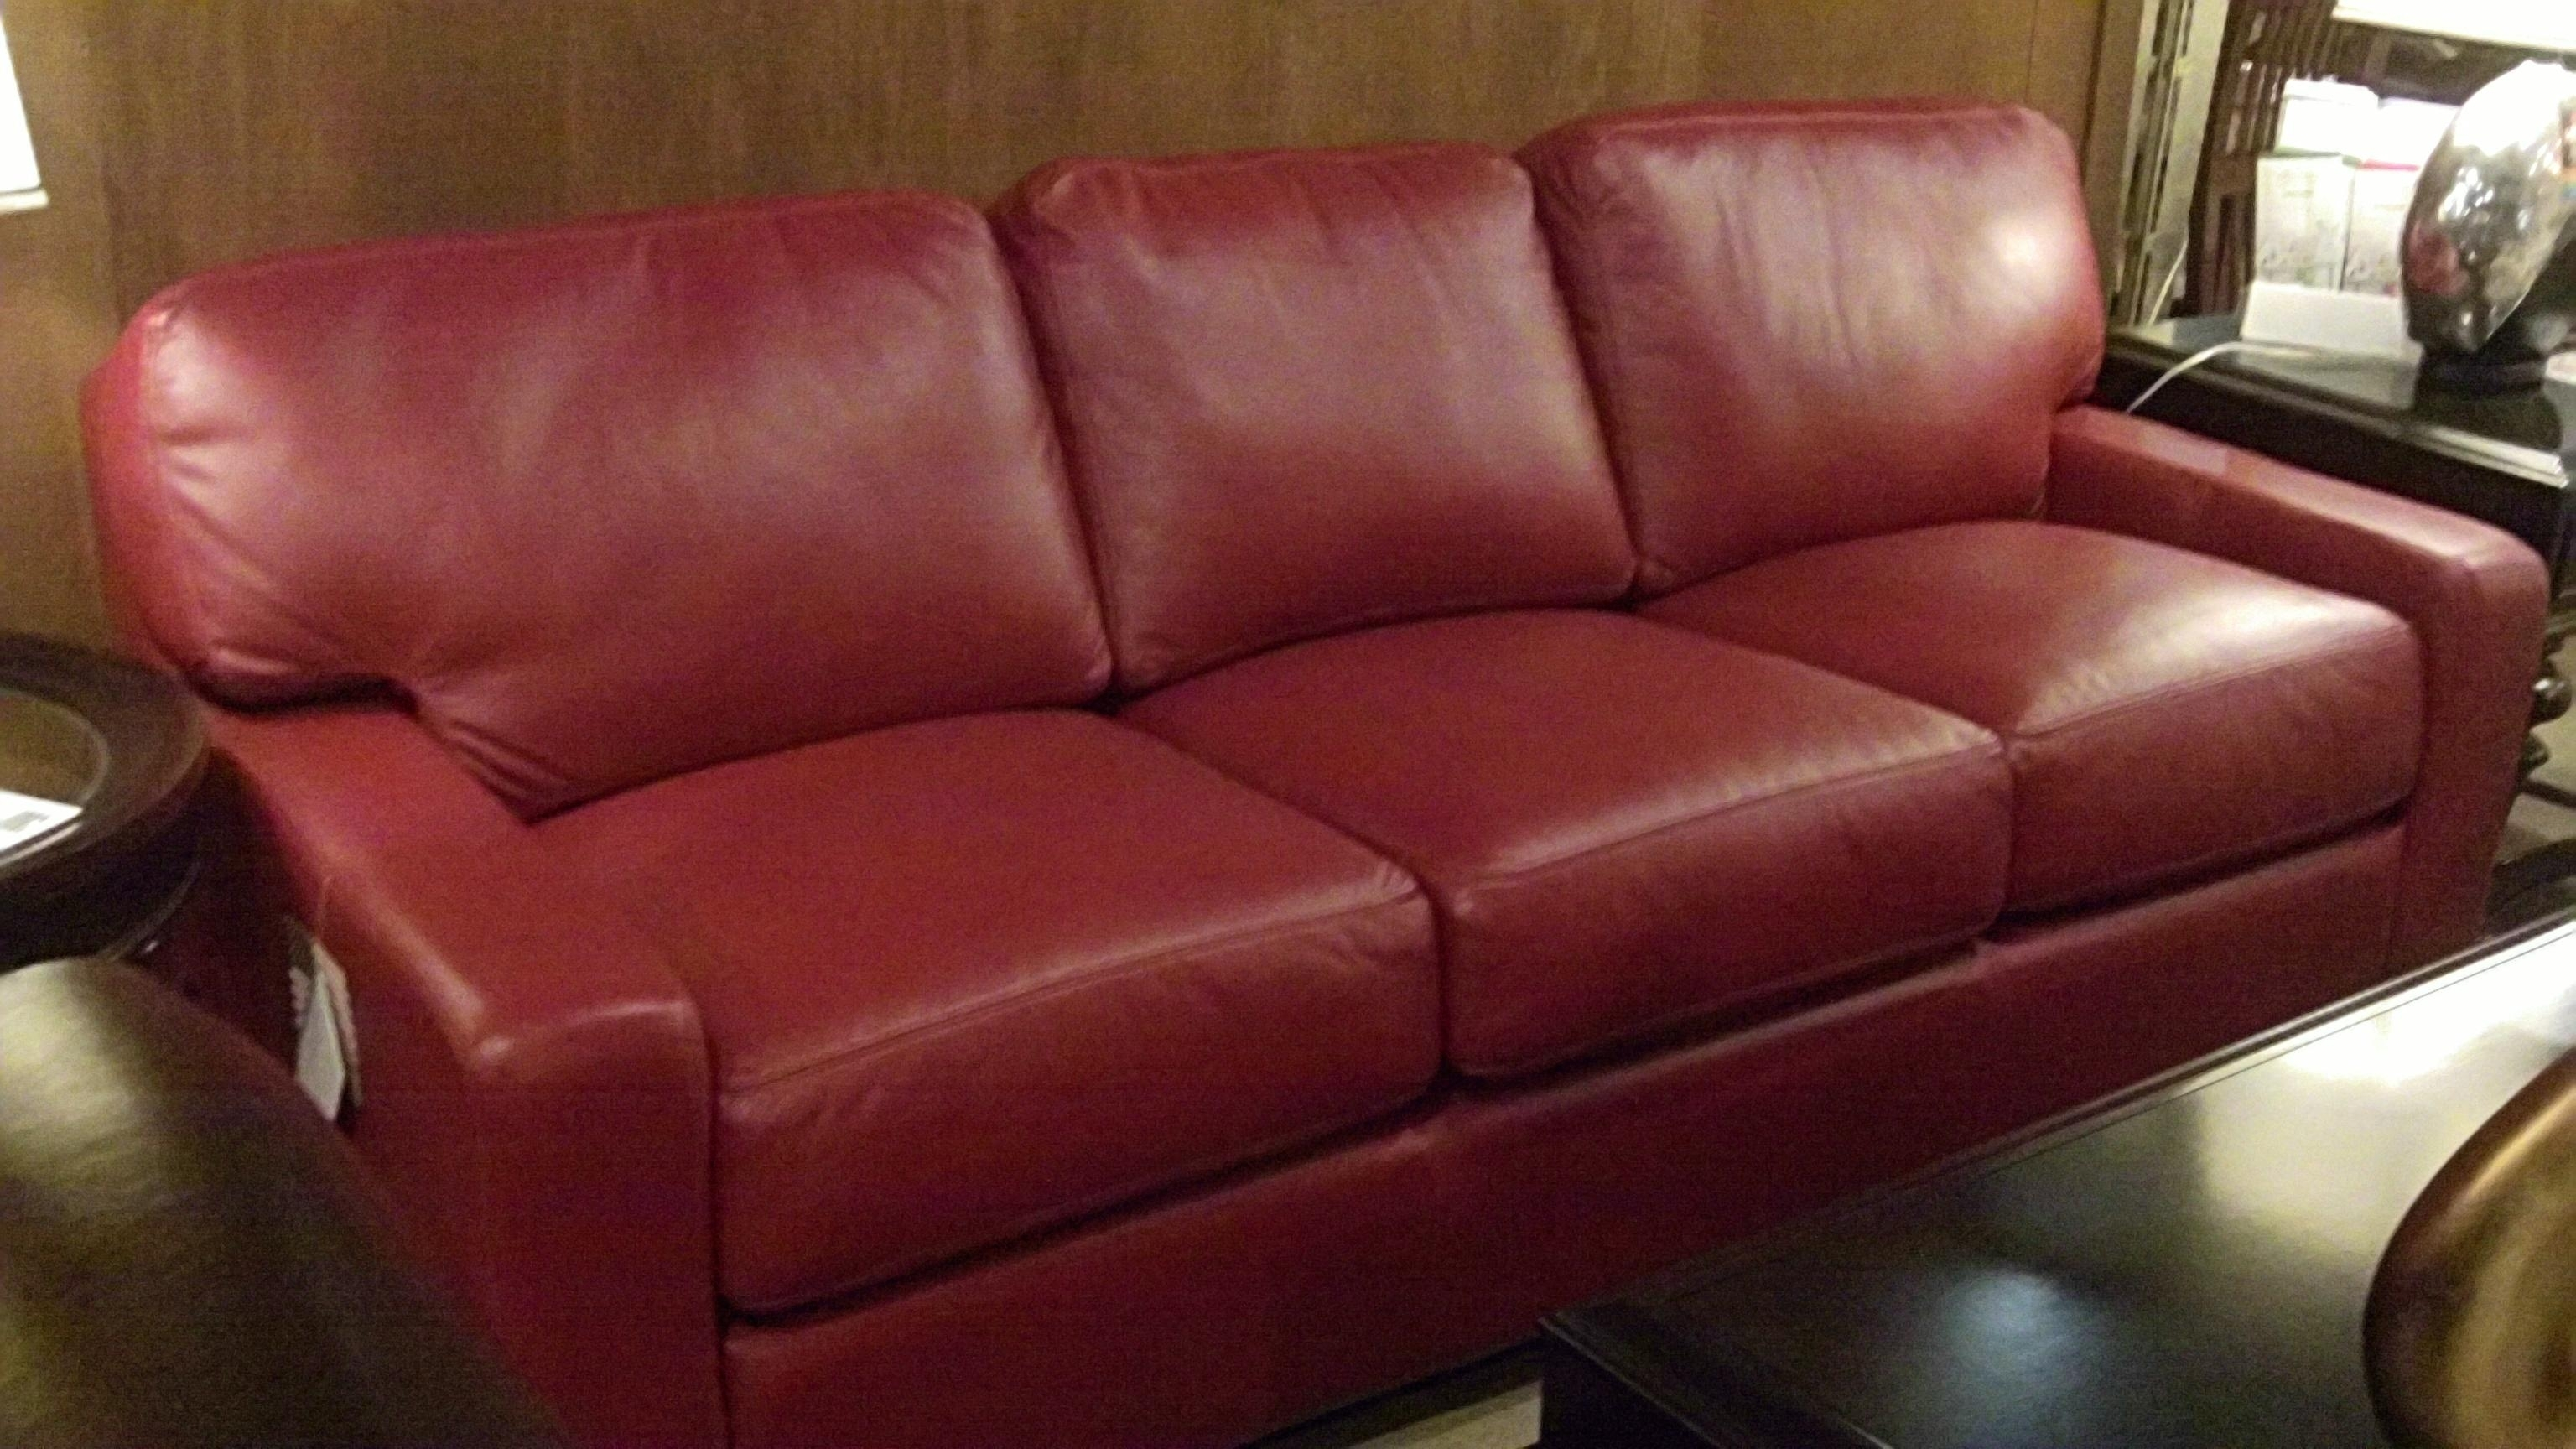 20 Photos Dark Red Leather Sofas | Sofa Ideas With Red Leather Sofas (View 10 of 15)